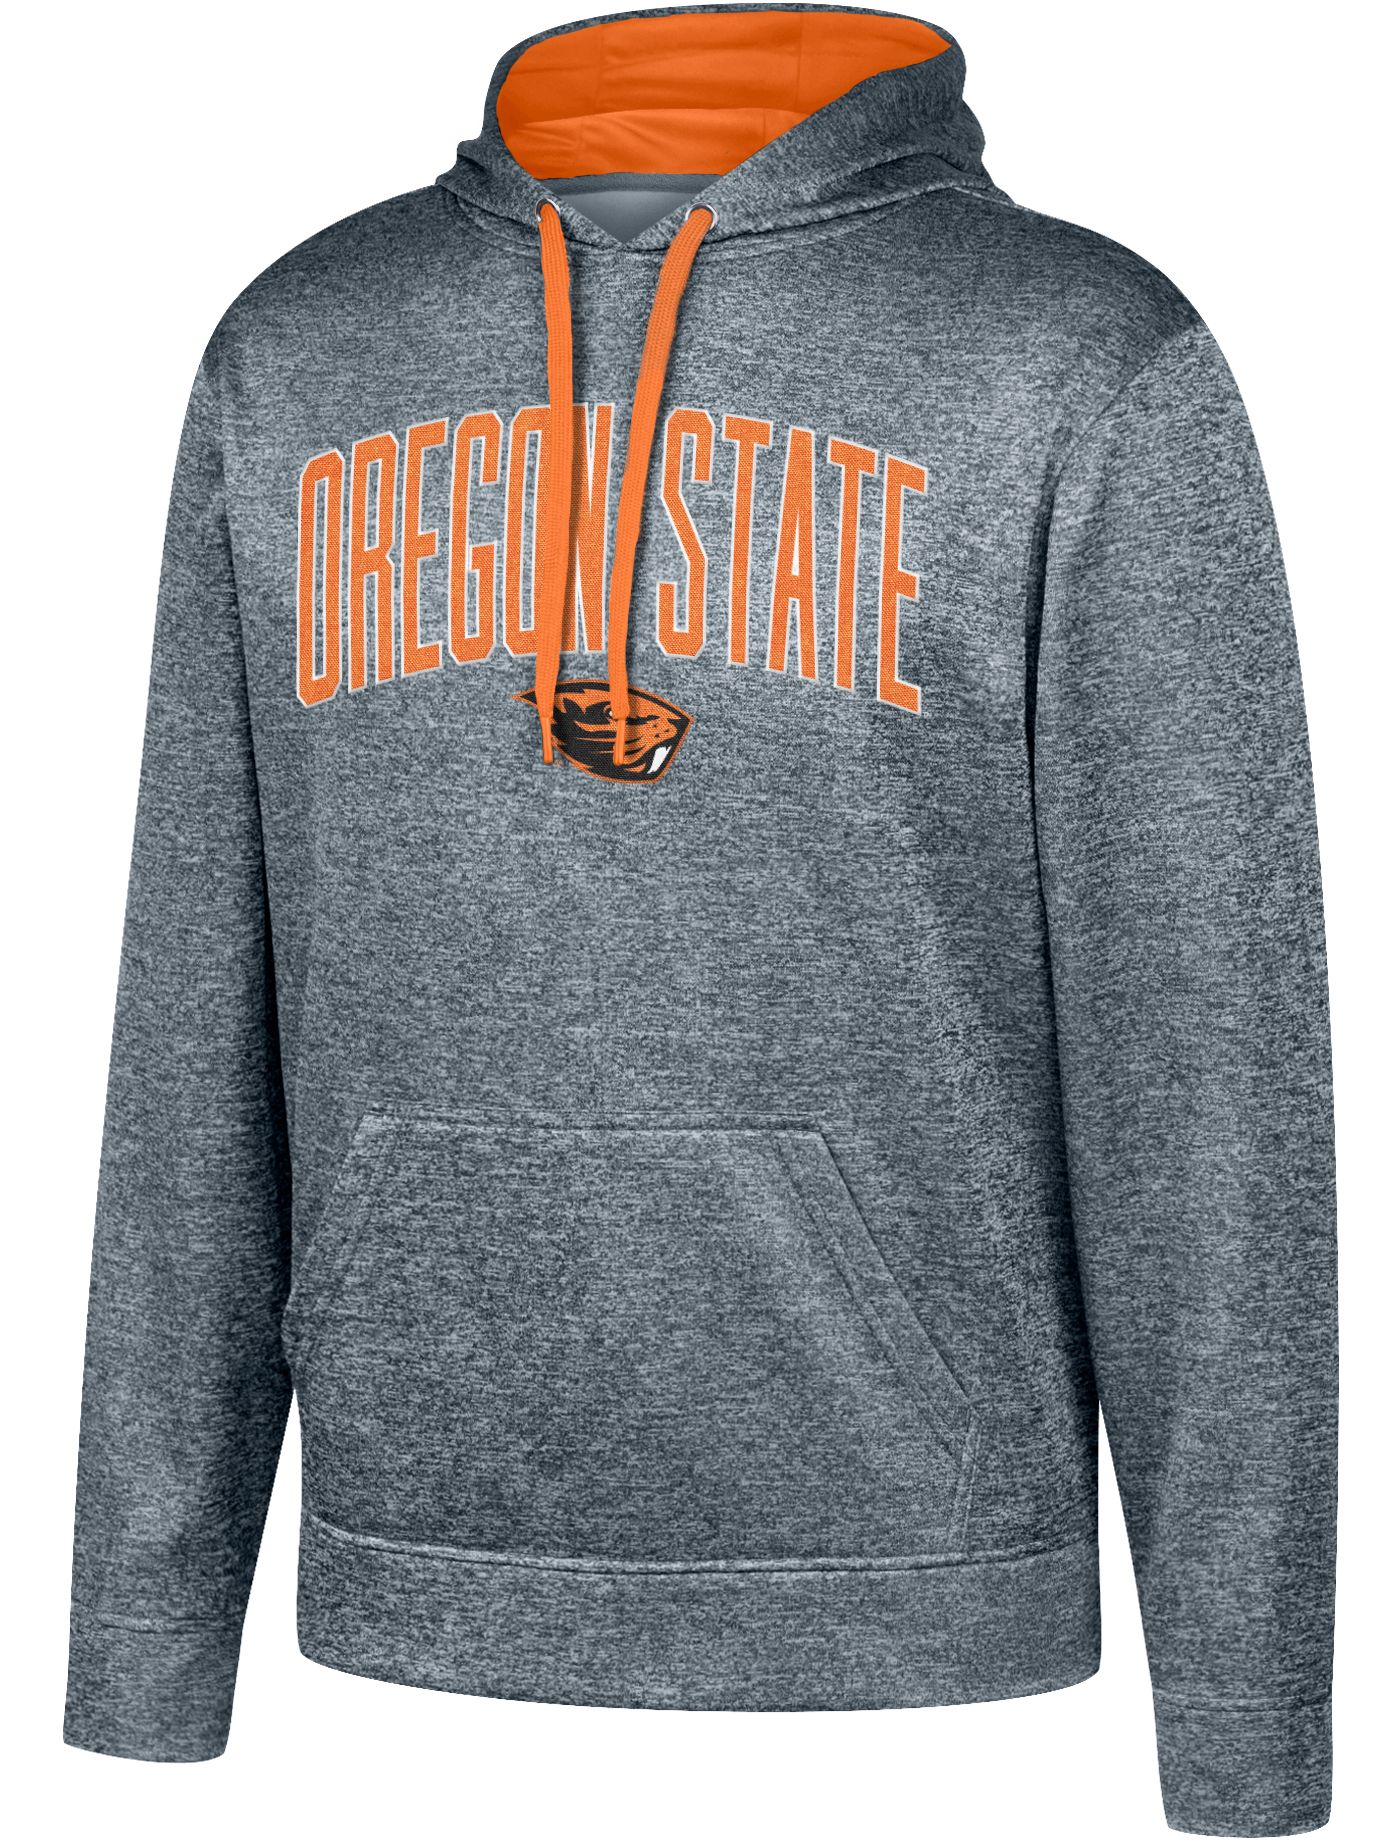 Top of the World Men's Oregon State Beavers Grey Foundation Poly Hoodie